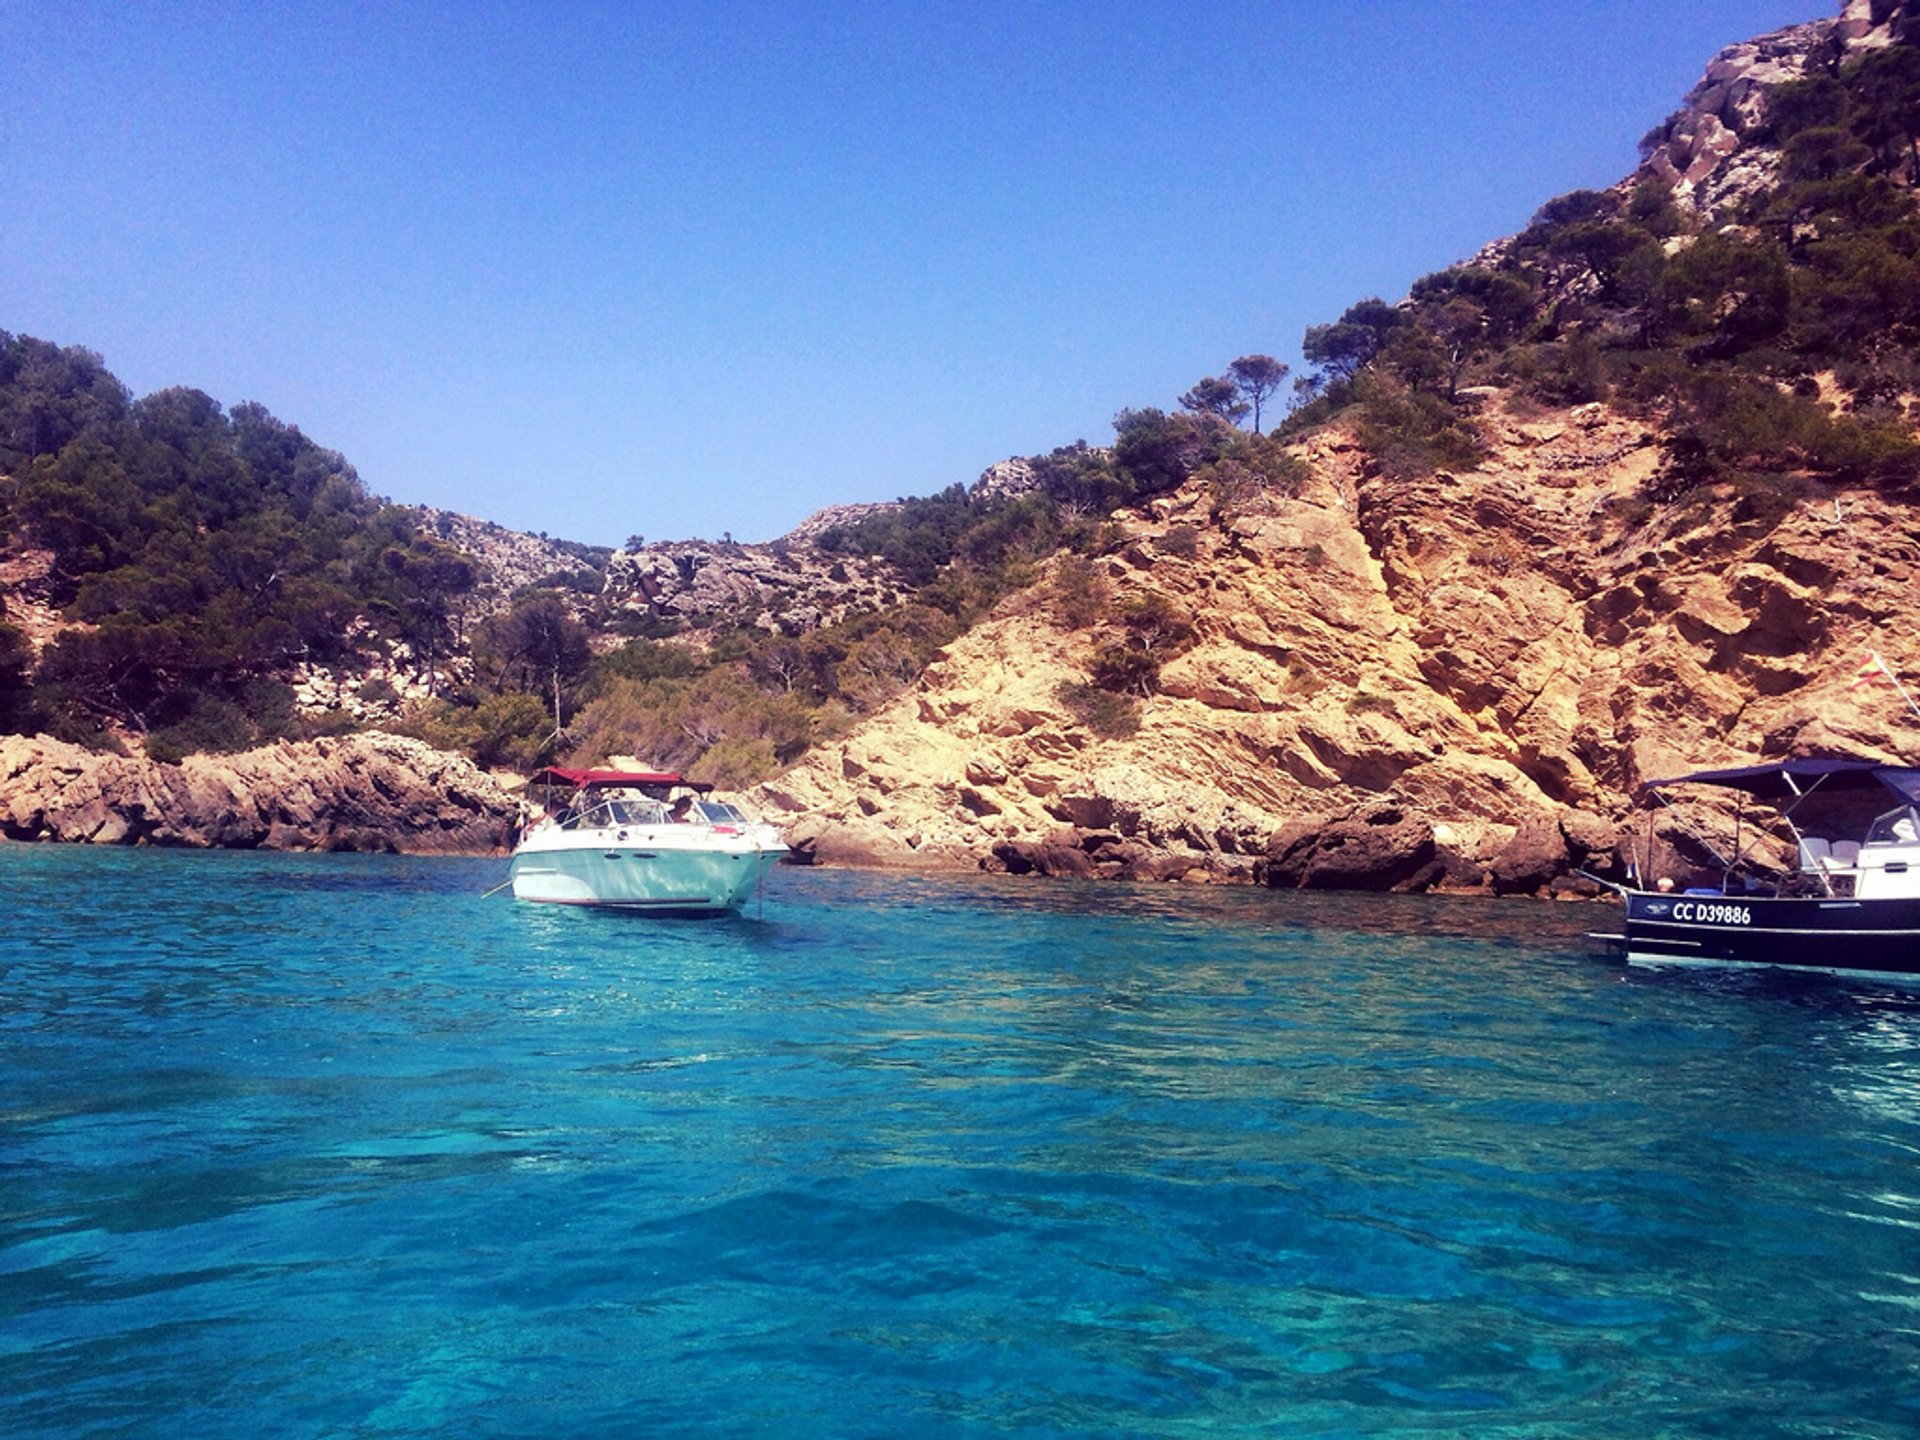 Boating and Yachting around Mallorca in Mallorca - Best Season 2020